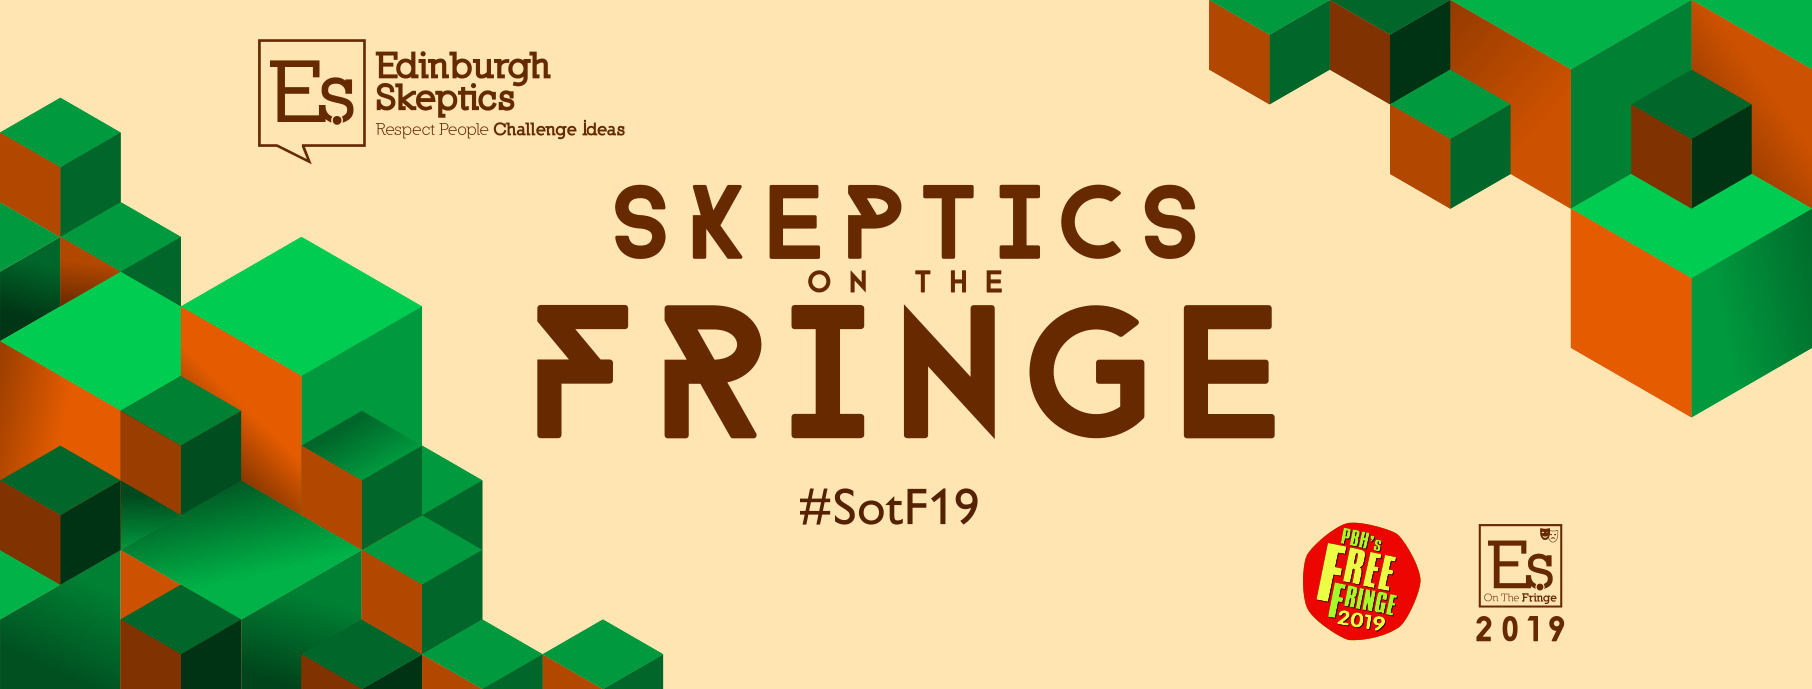 Skeptics on the Fringe poster